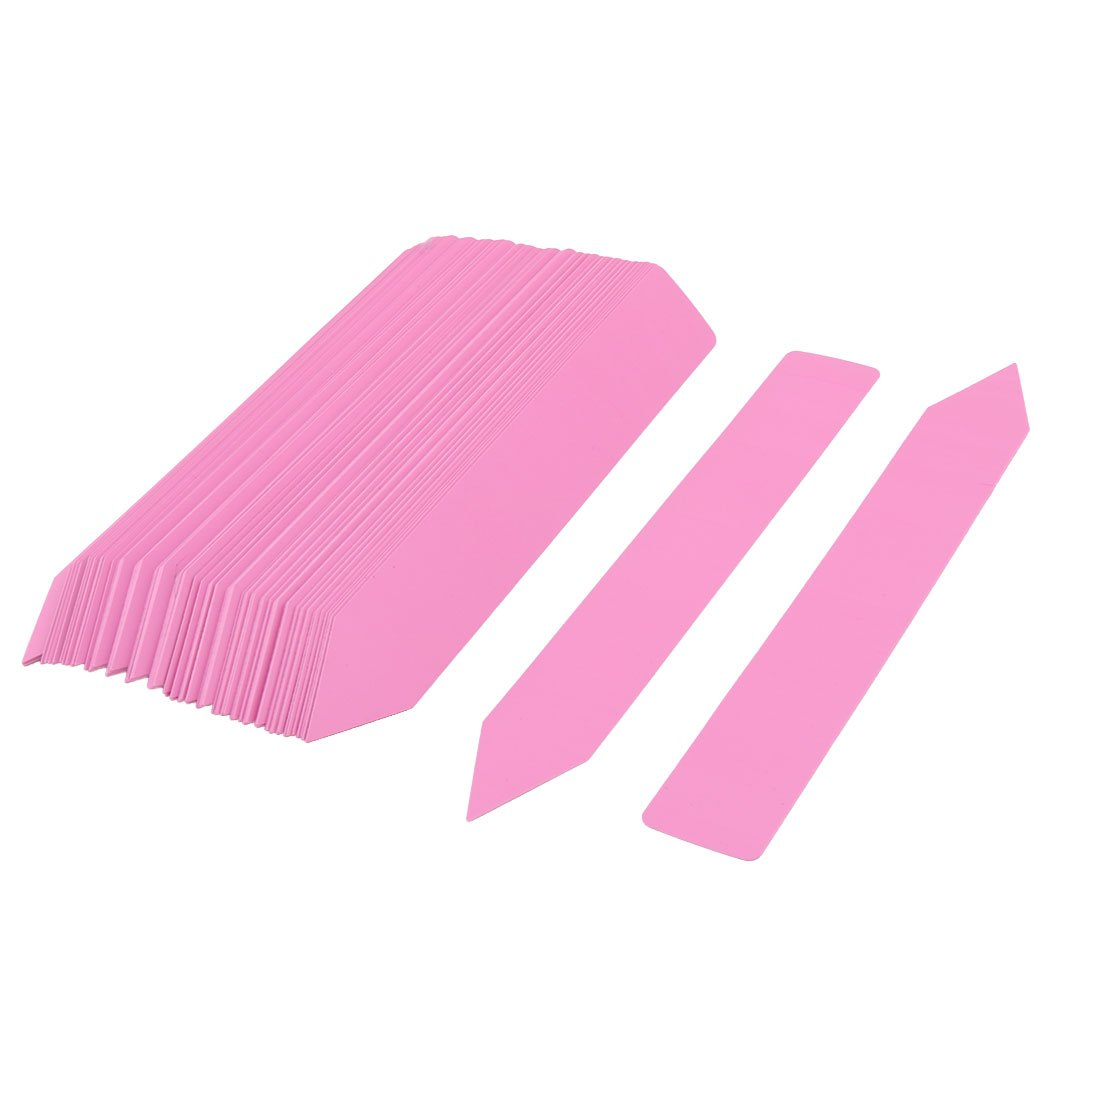 uxcell Plastic Household Garden Plant Seeds Name Marking Tag Label 3cm Width 100 Pcs Pink